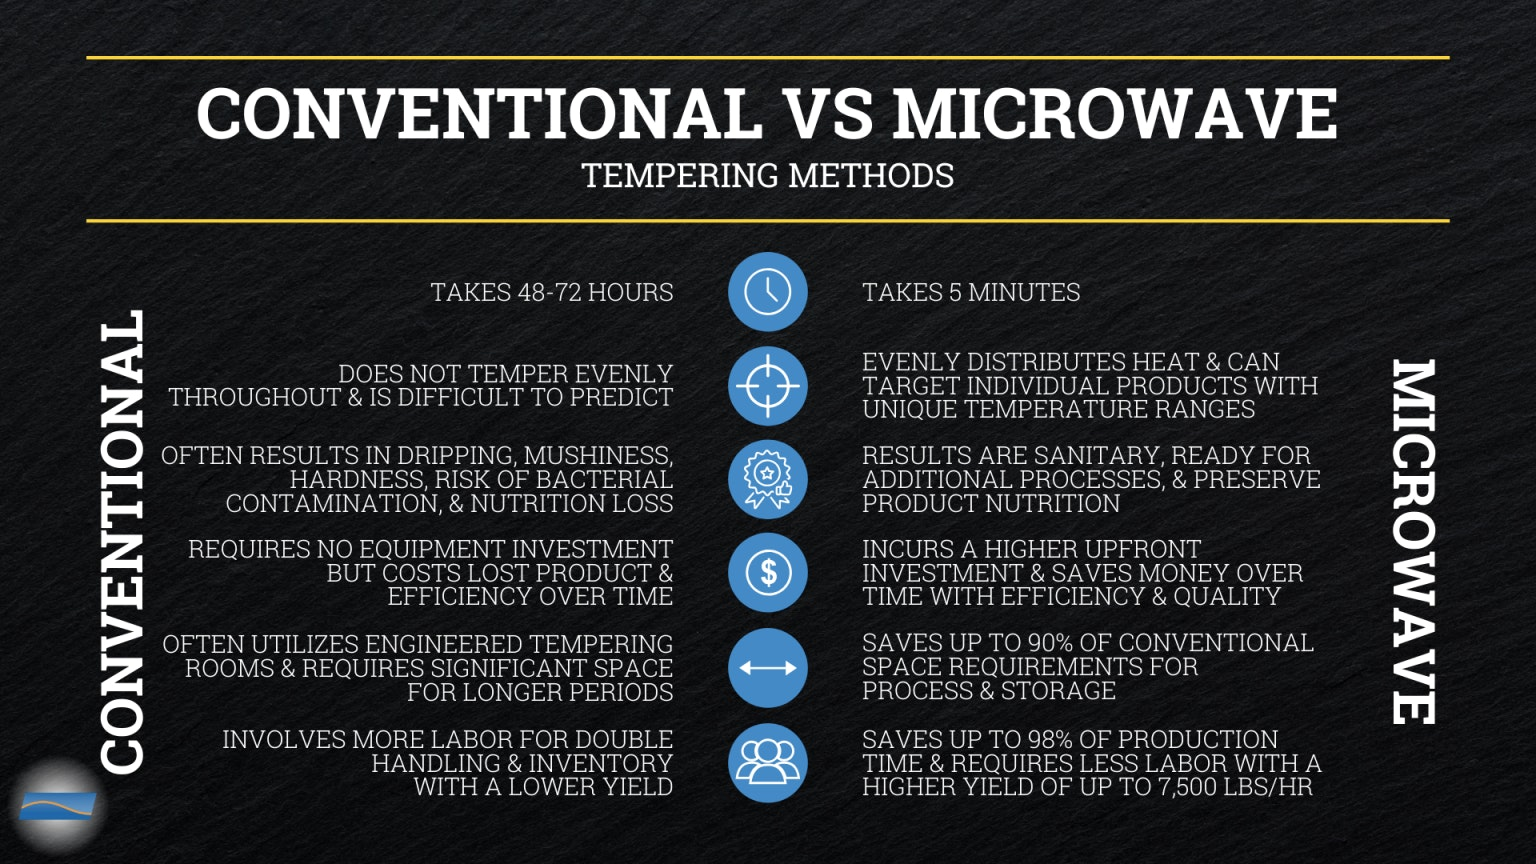 Microwave Vs Conventional Tempering Methods 1536x864